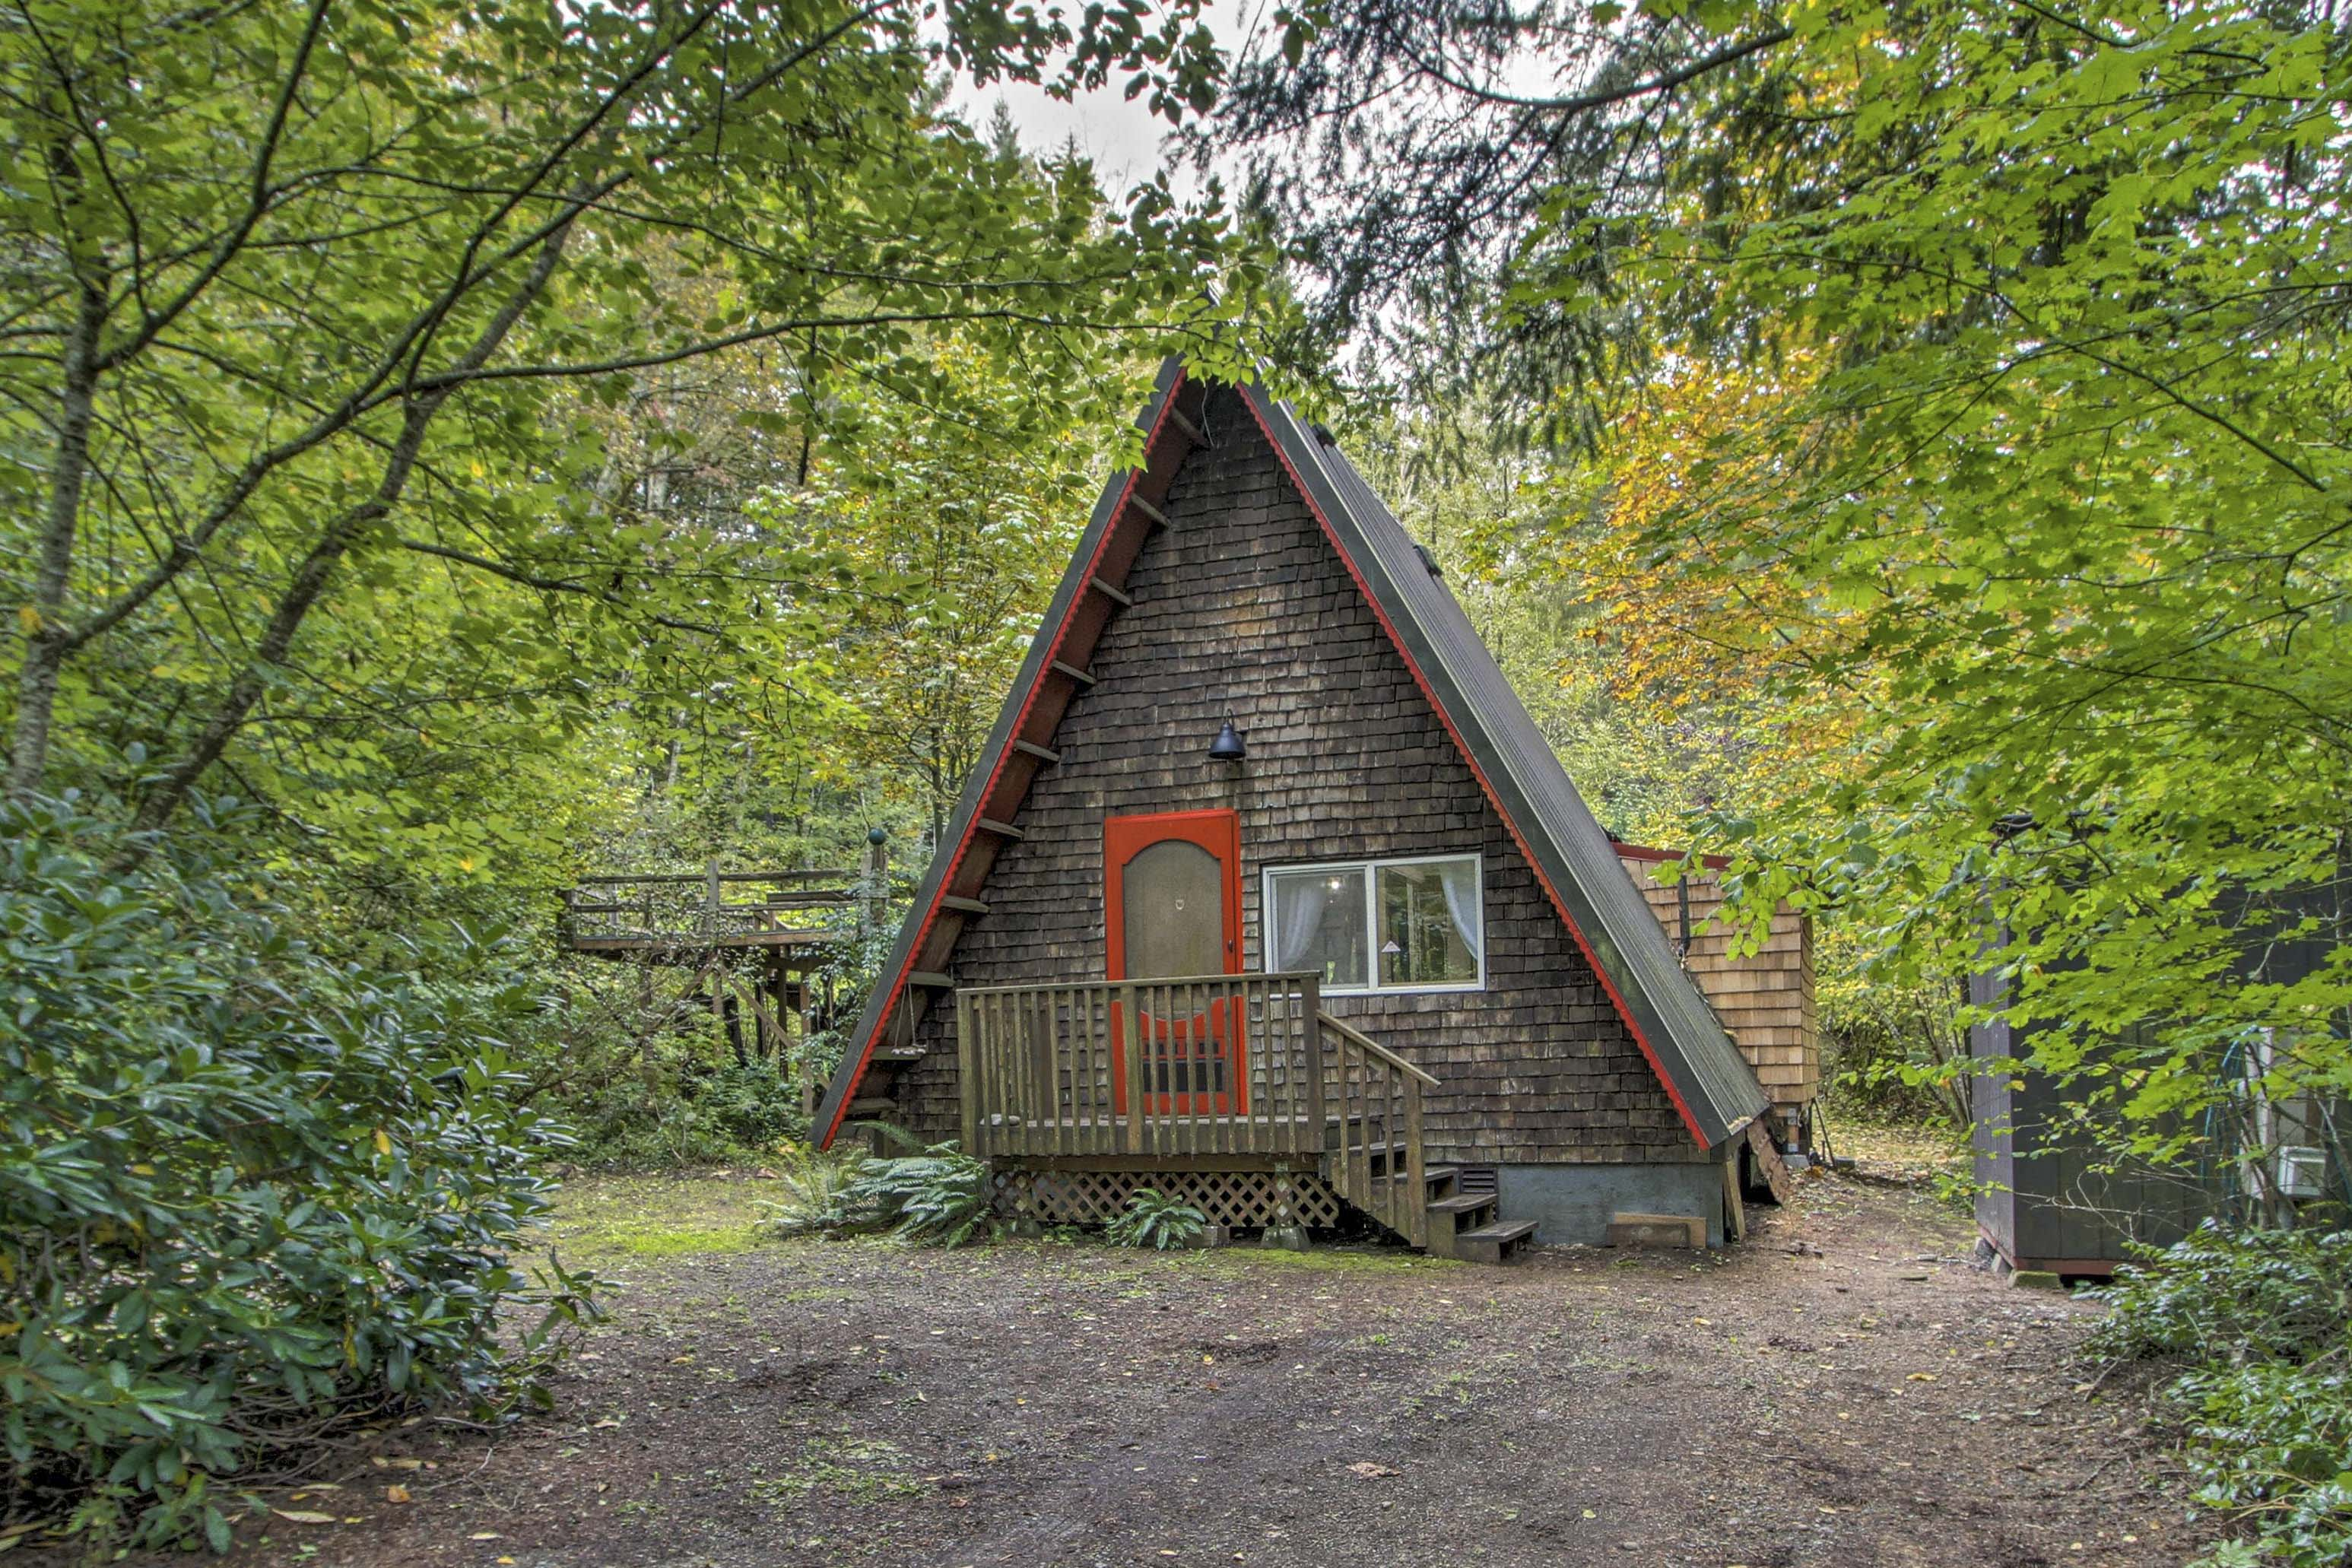 Get away to Hoosport, Washington & reconnect with nature at this charming cabin.